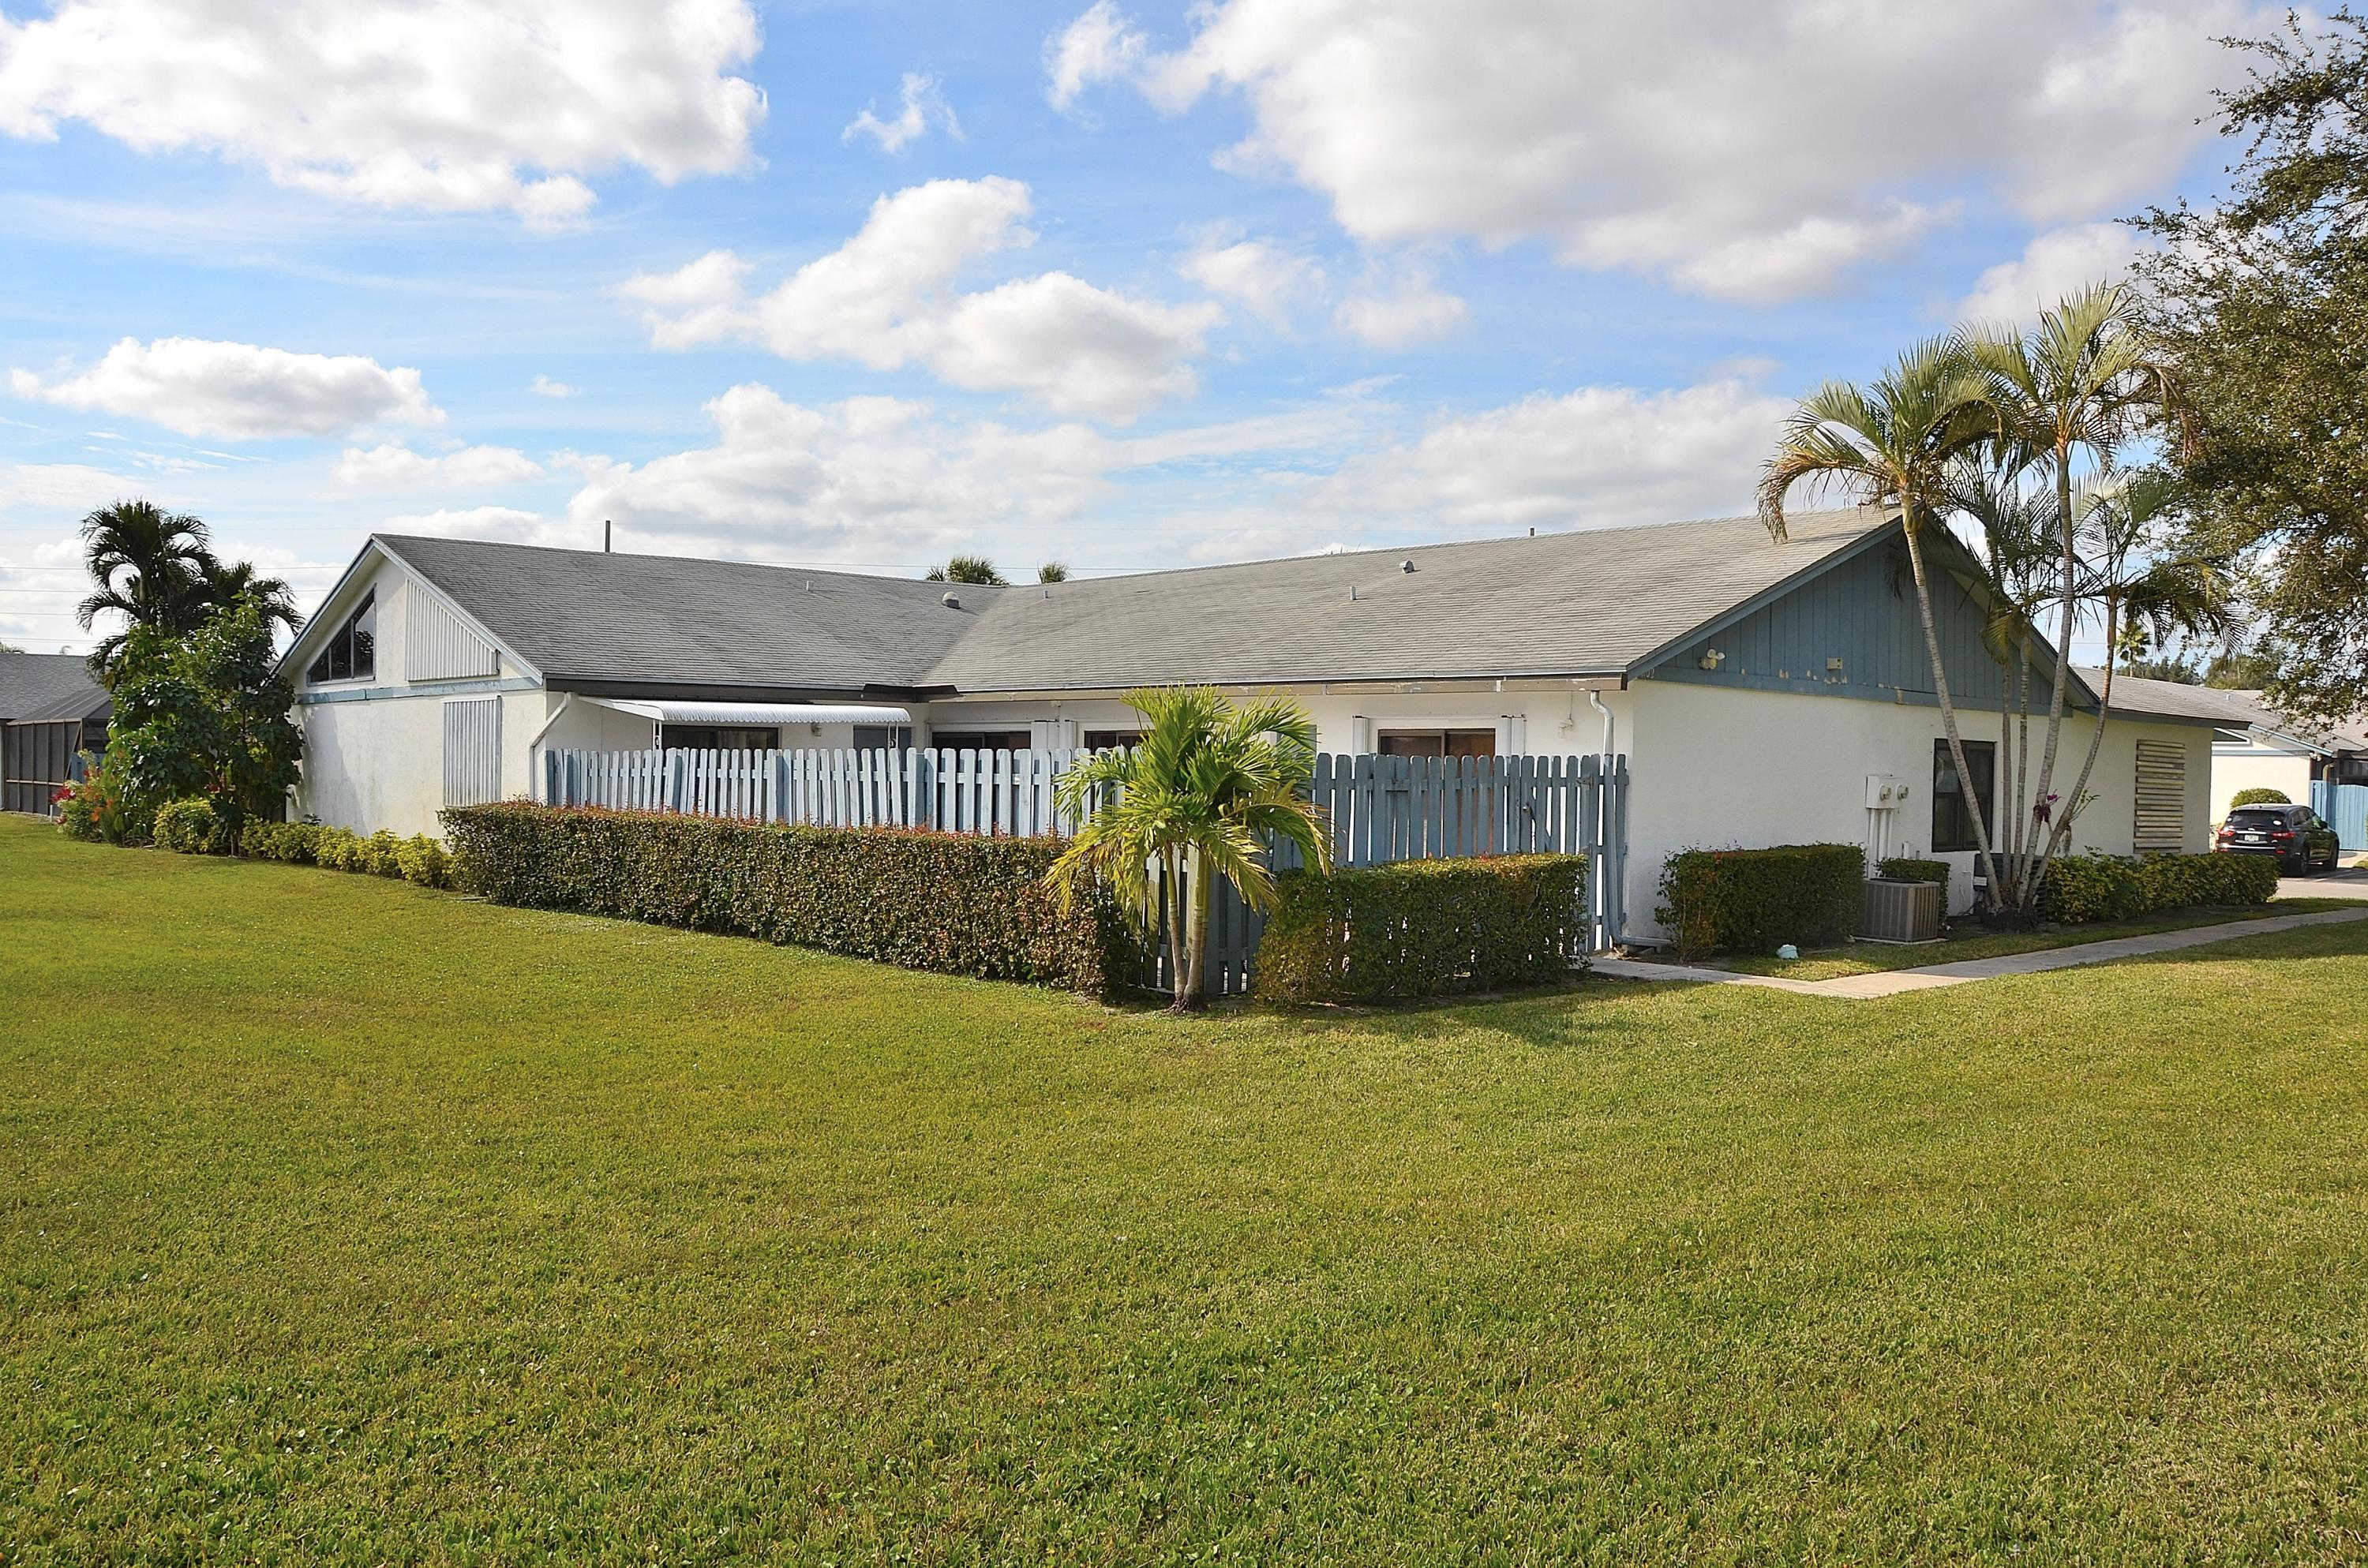 Photo of  Greenacres, FL 33463 MLS RX-10683738